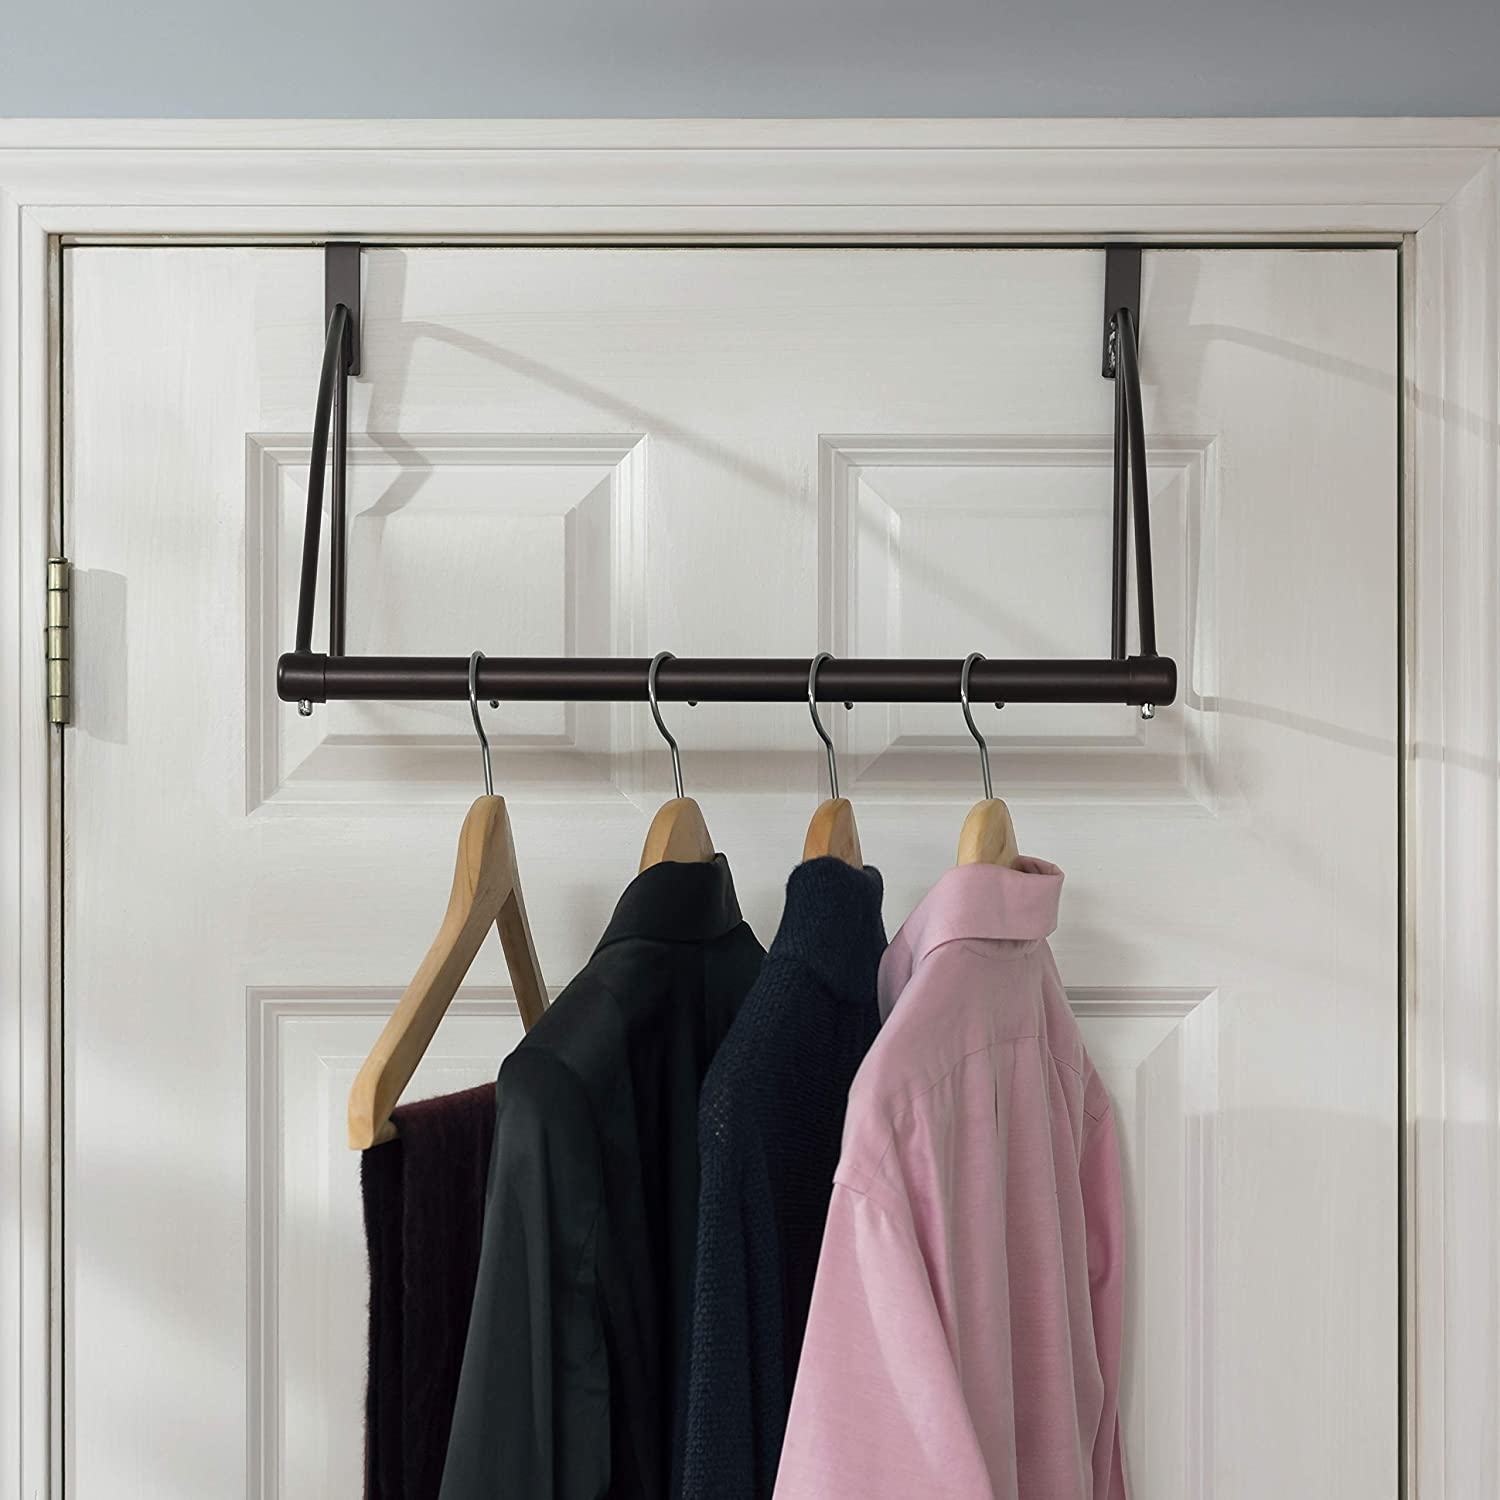 Home Basics Over The Door Rack Hanger HDS Trading Corp DH45393